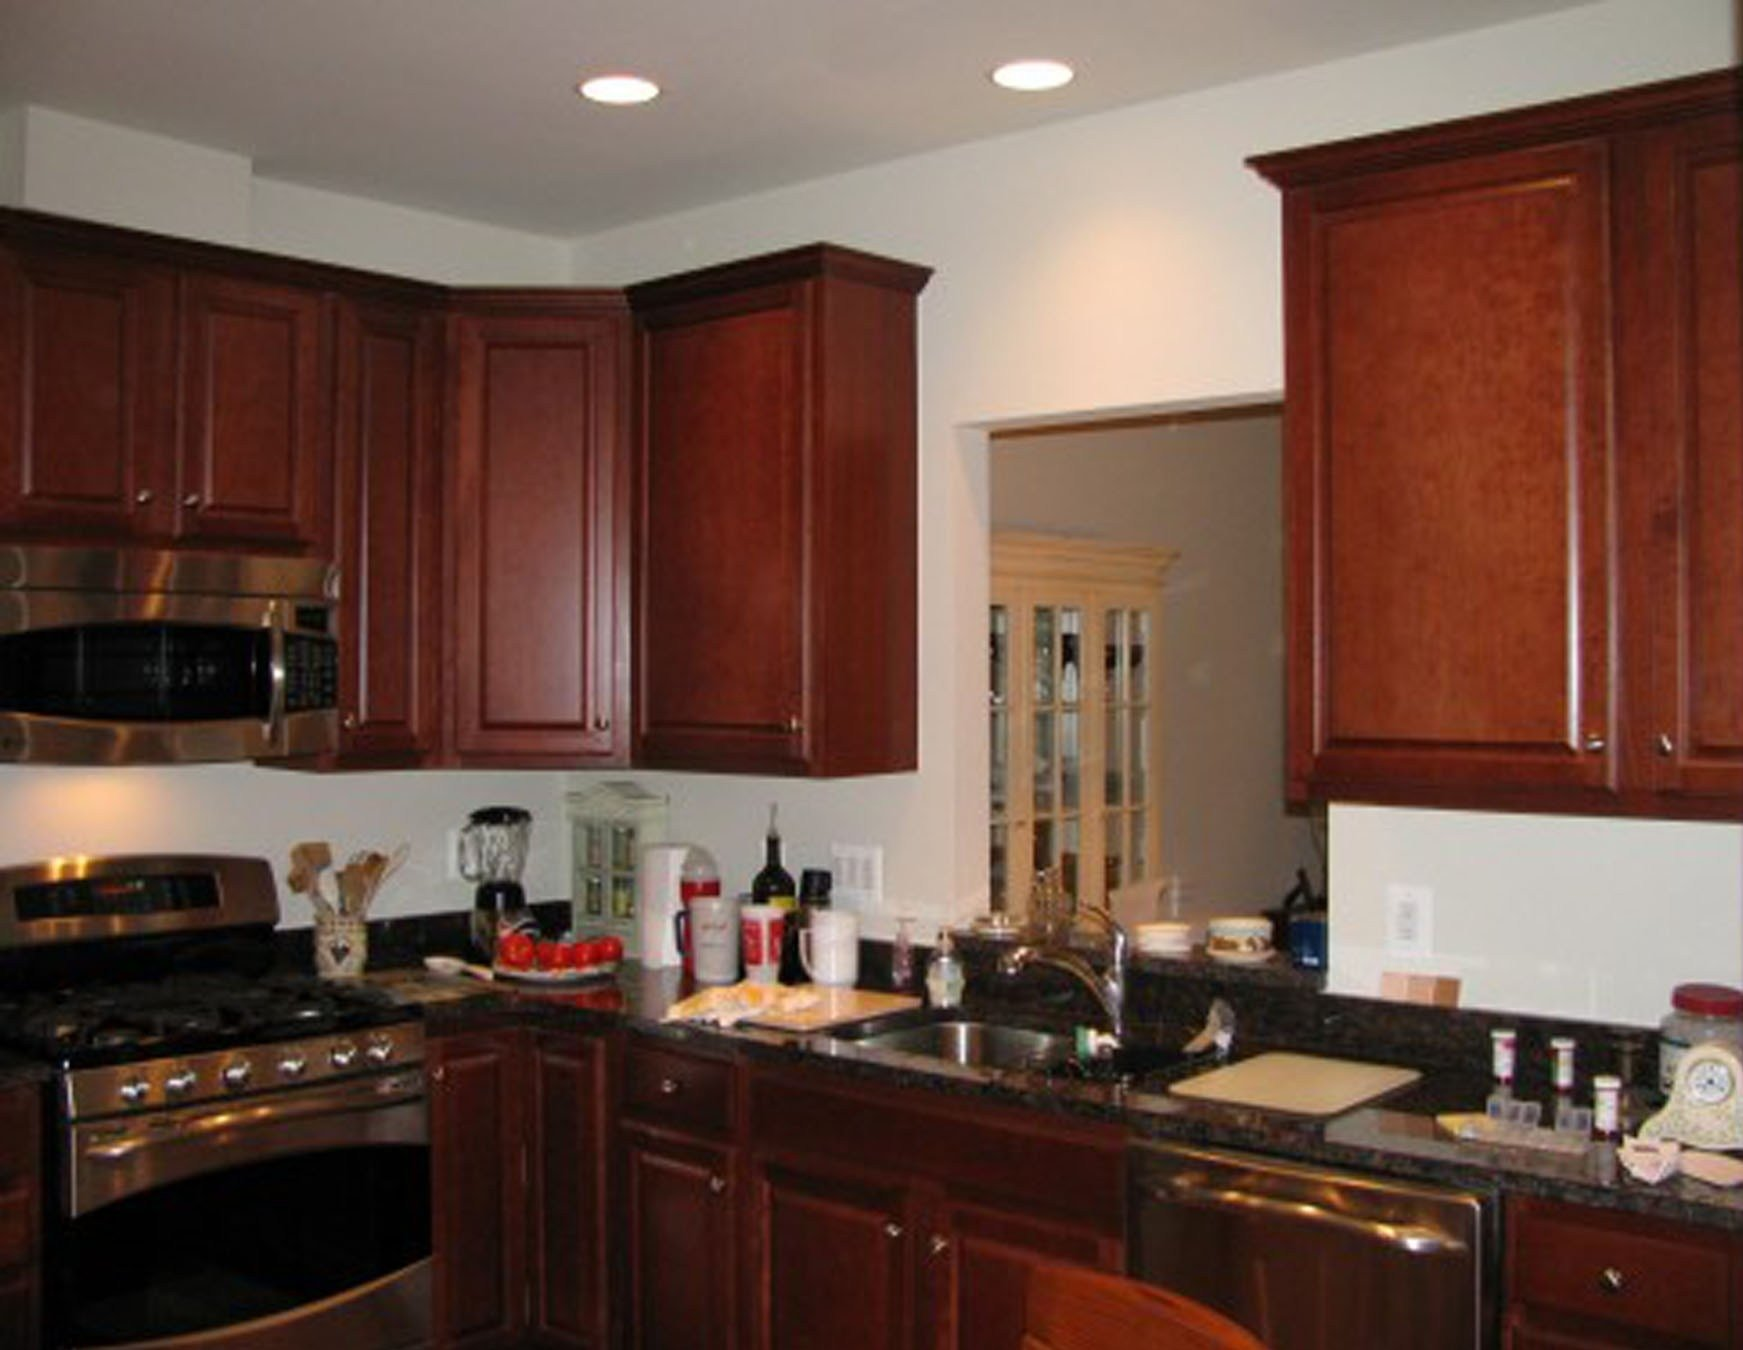 10 Lovable Kitchen Color Ideas With Maple Cabinets kitchen colors with dark brown cabinets wainscoting kitchens 2020